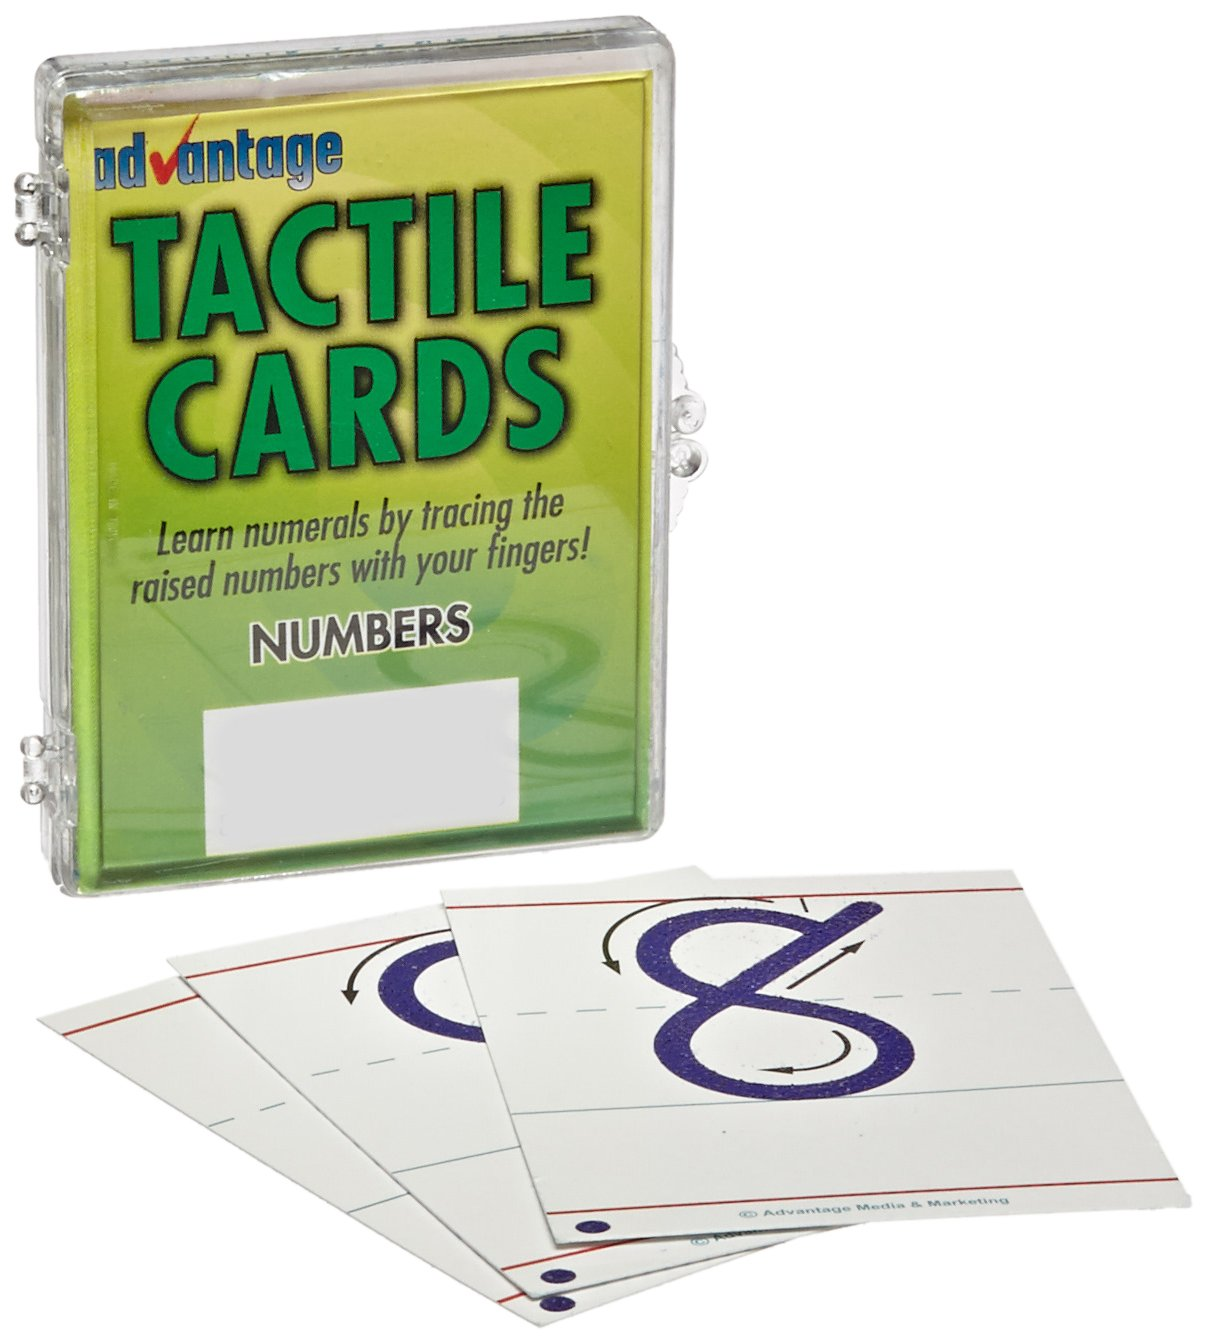 School Specialty Advantage Tactile Cards - Numbers